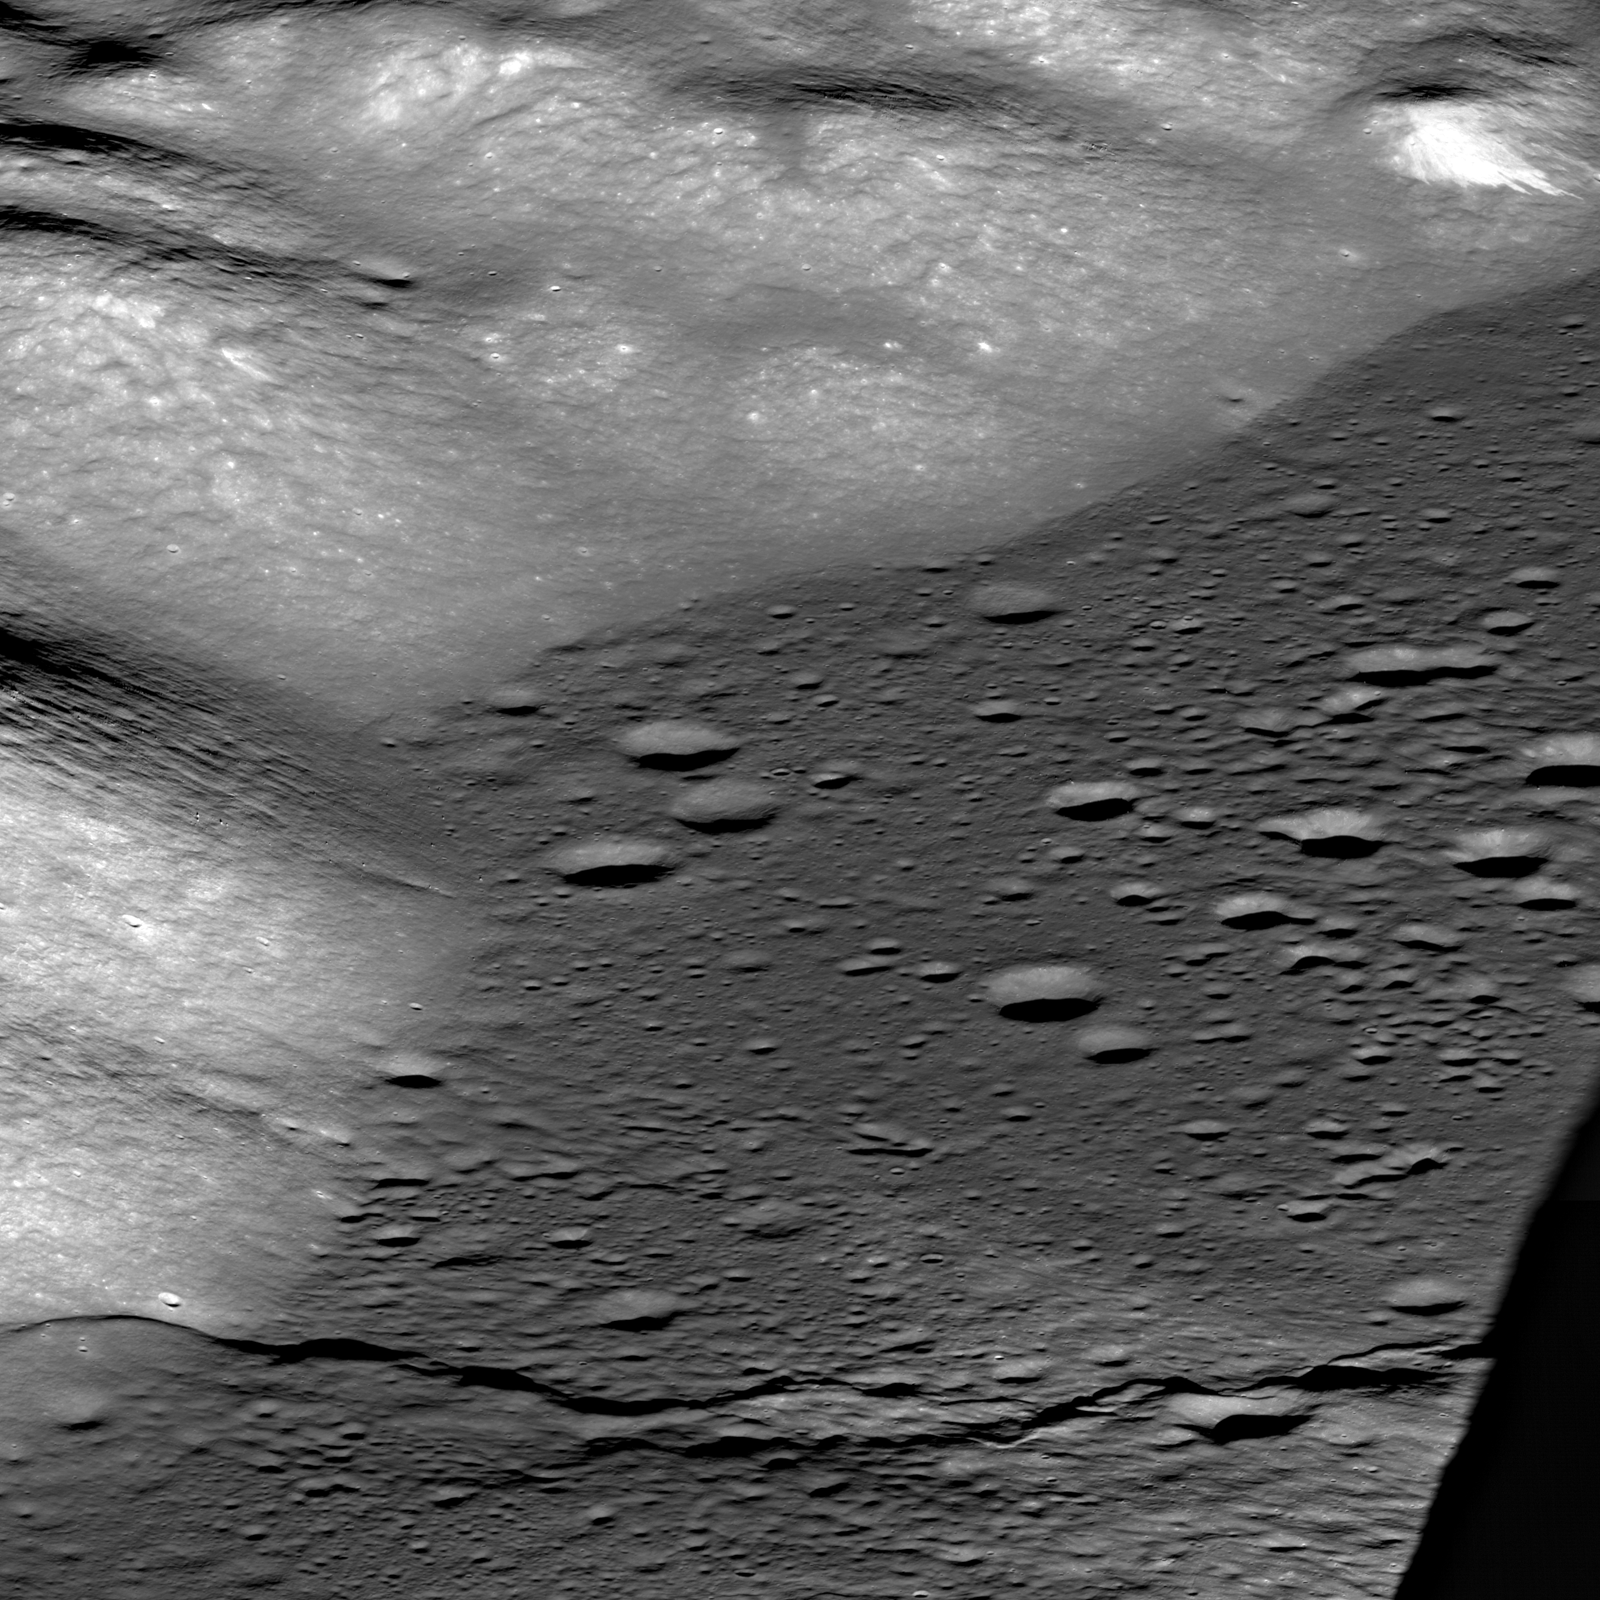 Taurus Littrow Valley, West to East